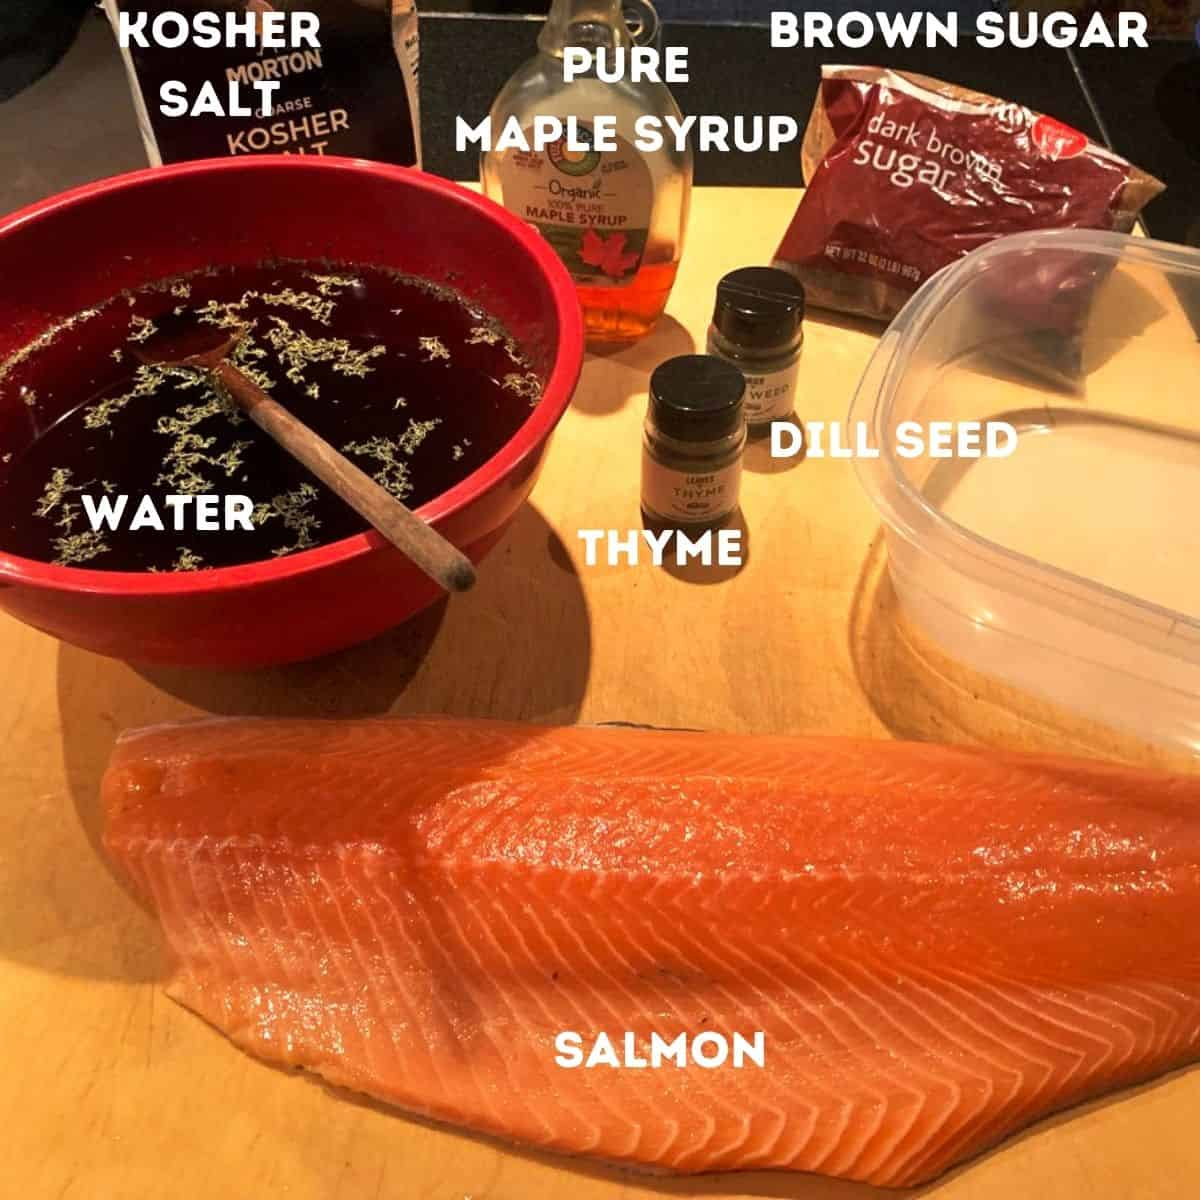 Salmon and other ingredients on a cutting board.